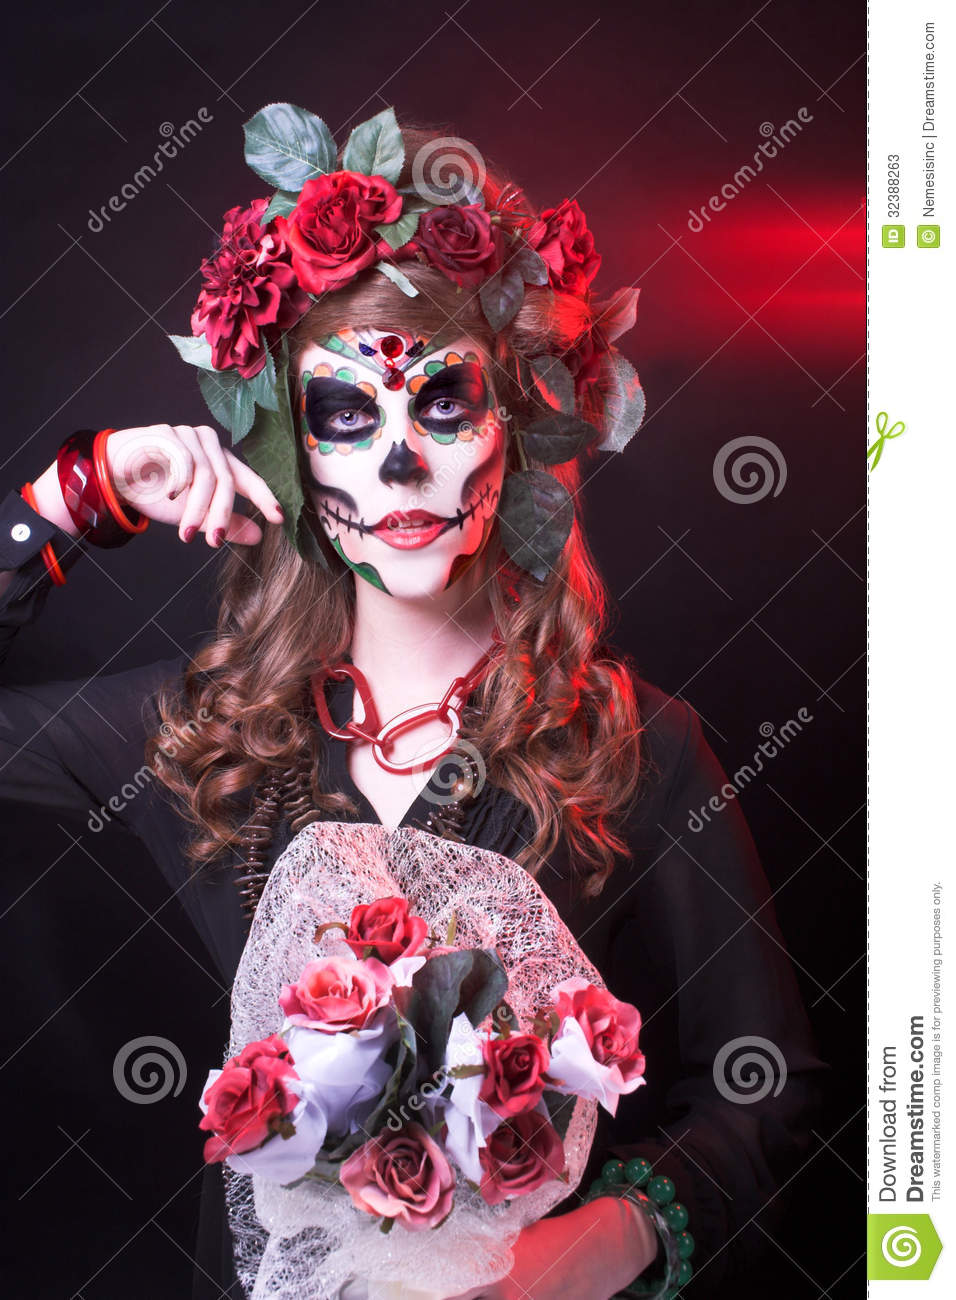 Santa Muerte. Young woman with artistic visage and with roses in her ...